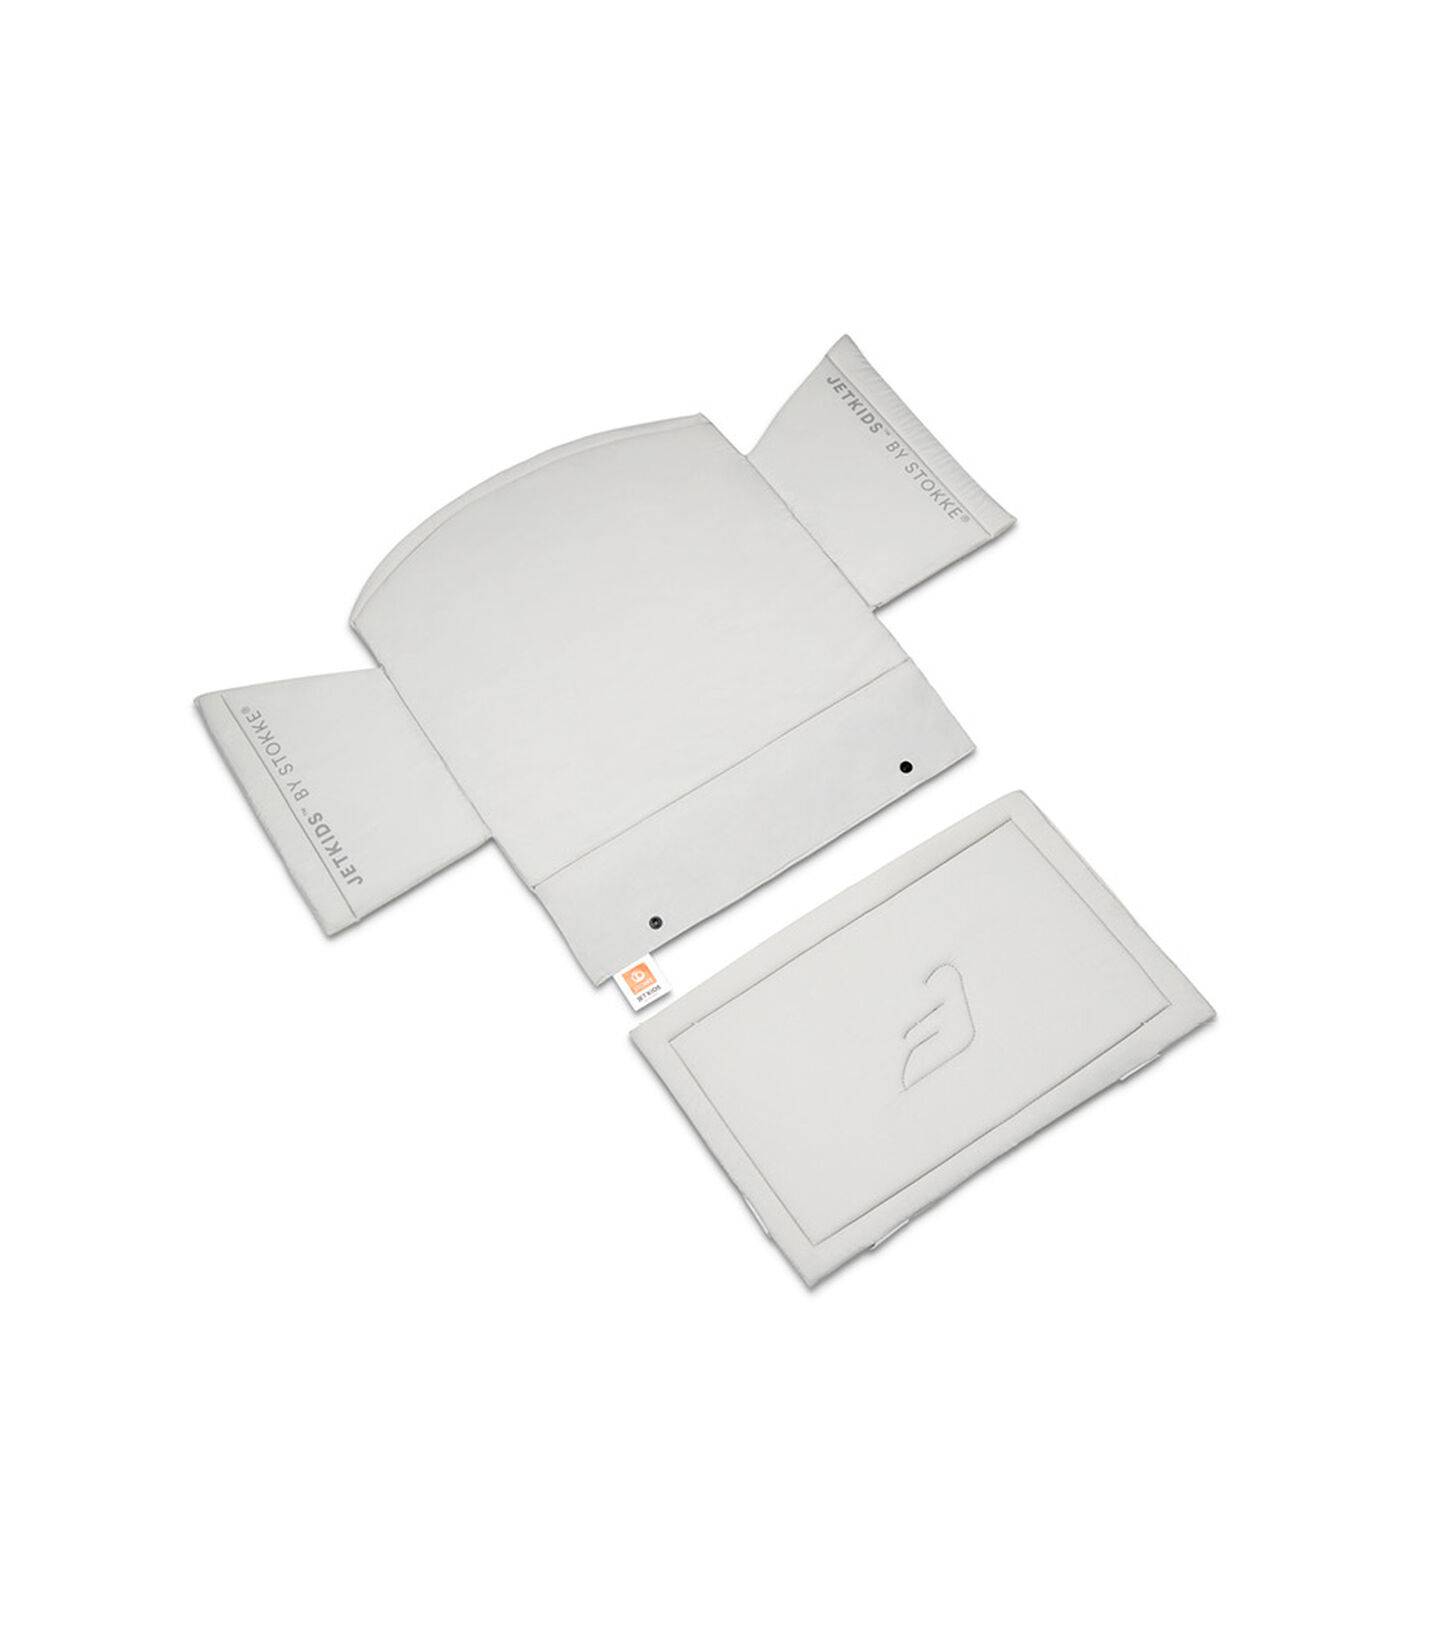 JetKids™ by Stokke® BedBox V3. Mattress. Spare Part. view 1